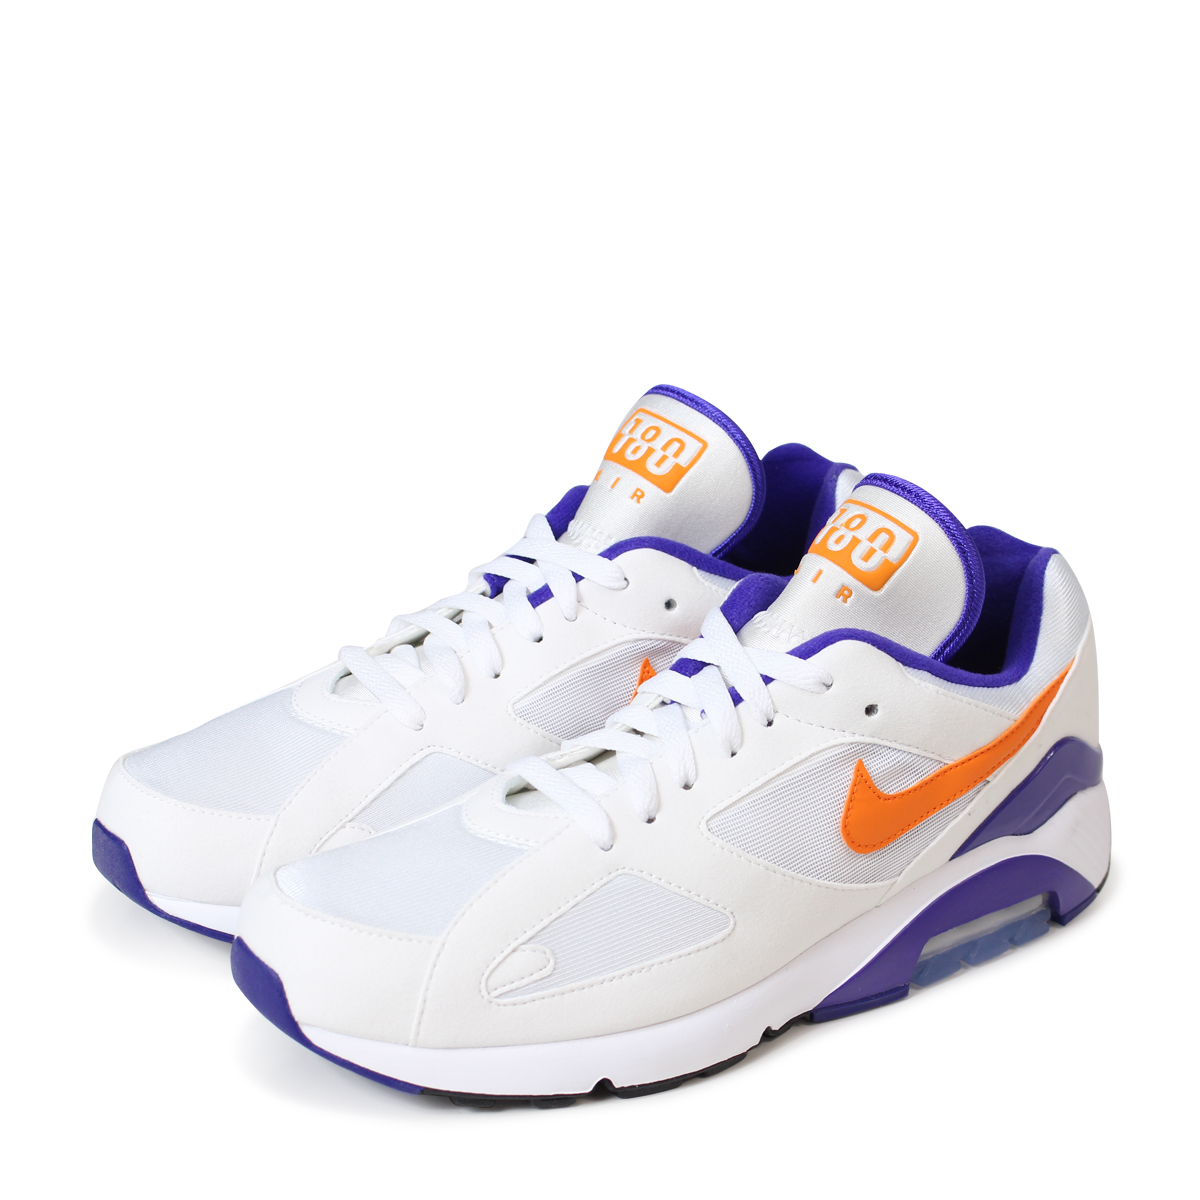 pas cher pour réduction cf0f8 243cb Nike NIKE Air Max 180 sneakers men AIR MAX 180 615,287-101 white [193]